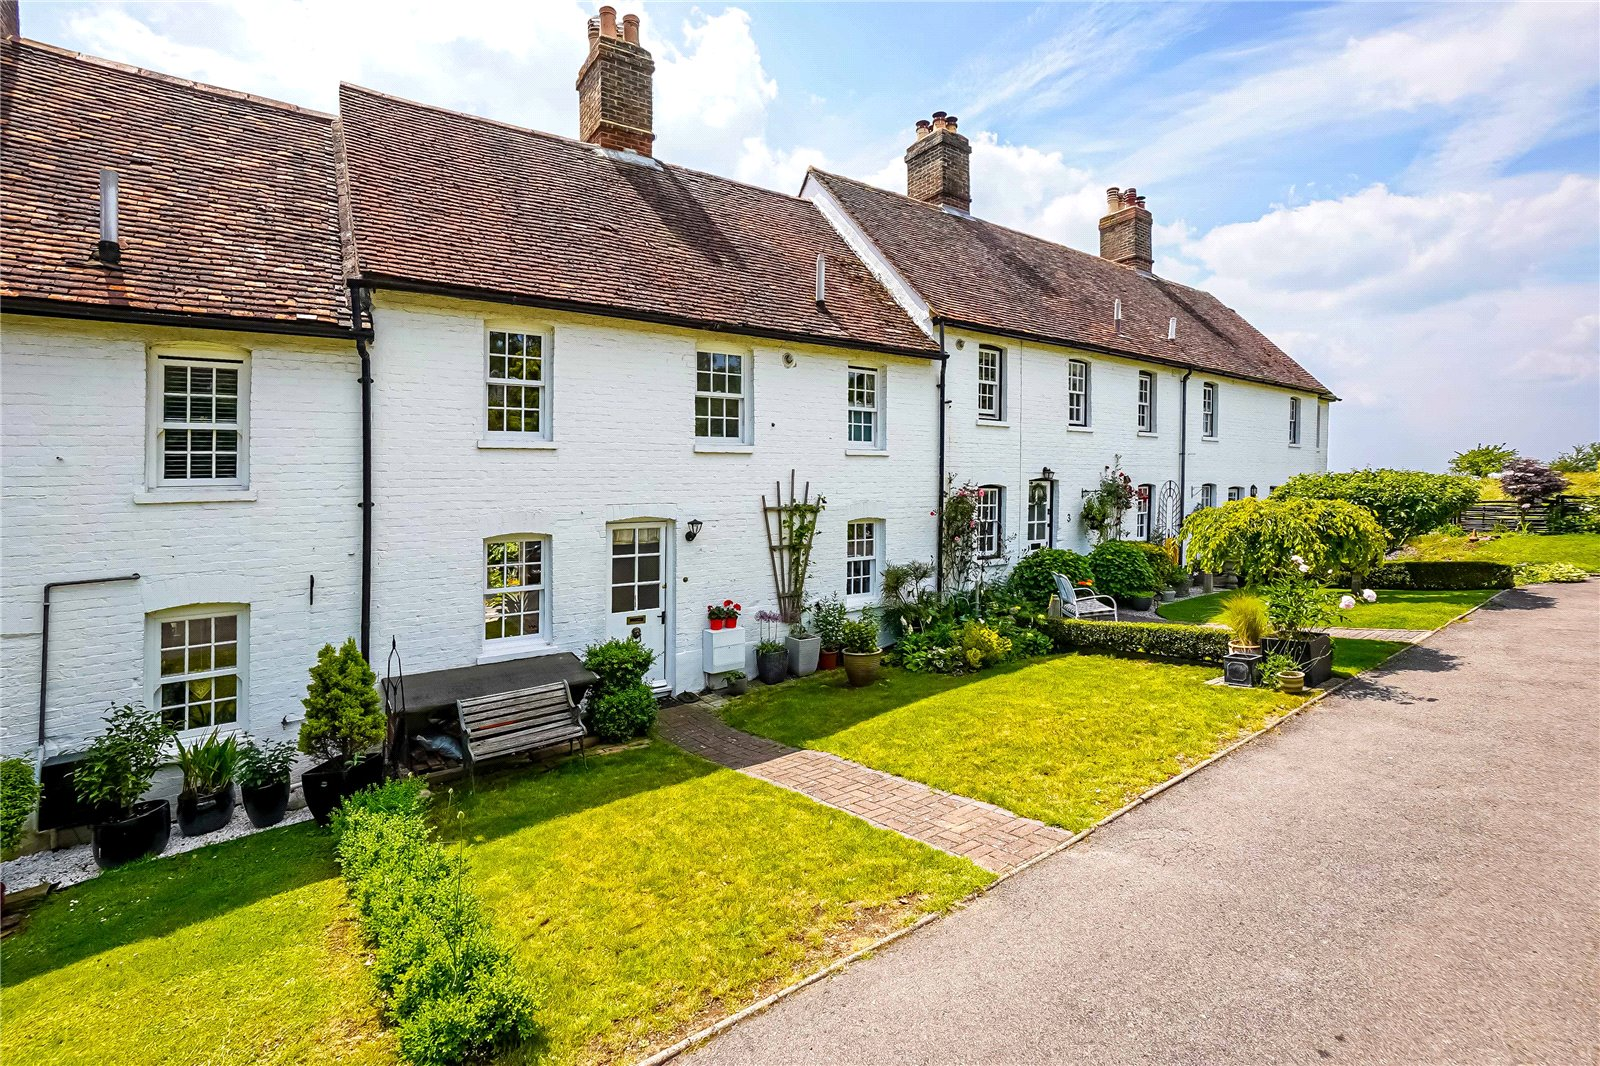 3 bed house for sale in Greenfield Cottages, The Street  - Property Image 1